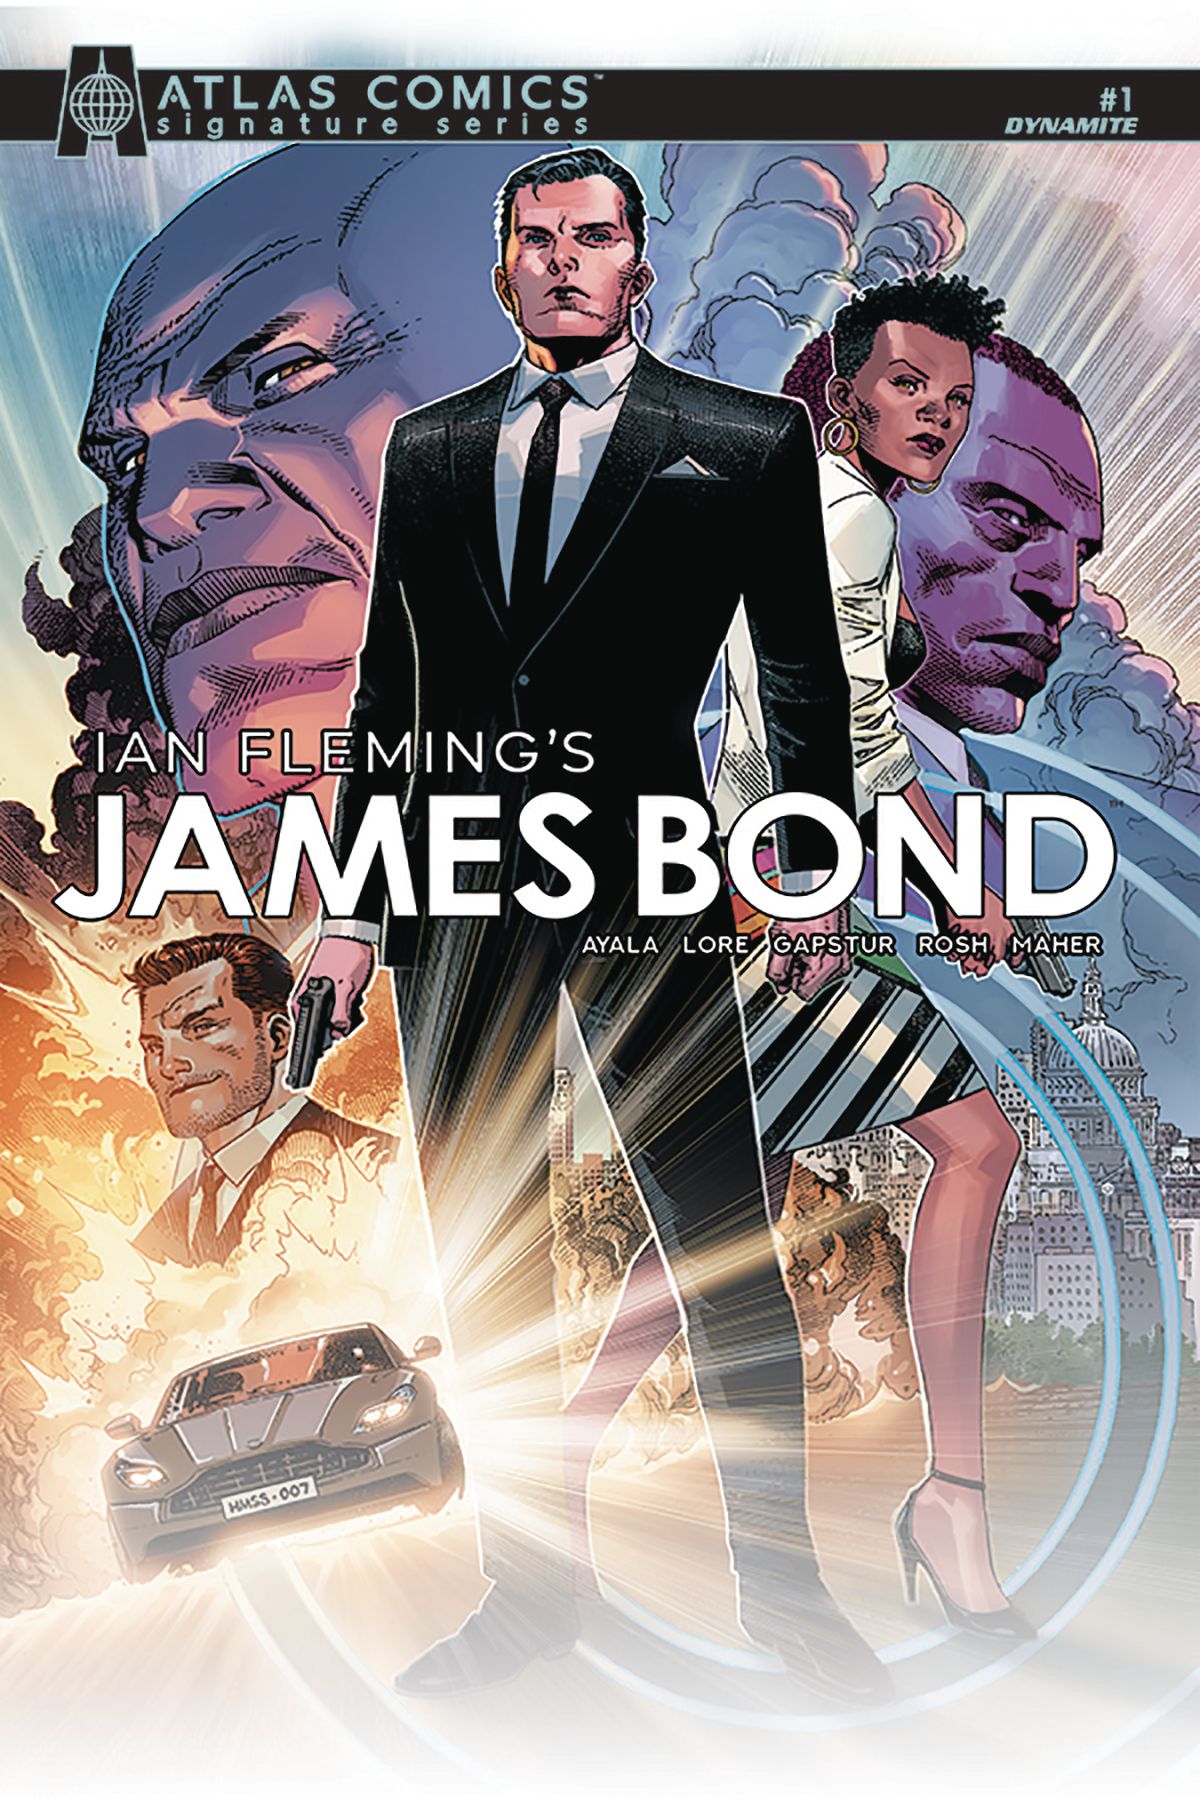 JAMES BOND #1 AYALA & LORE SGN ATLAS ED